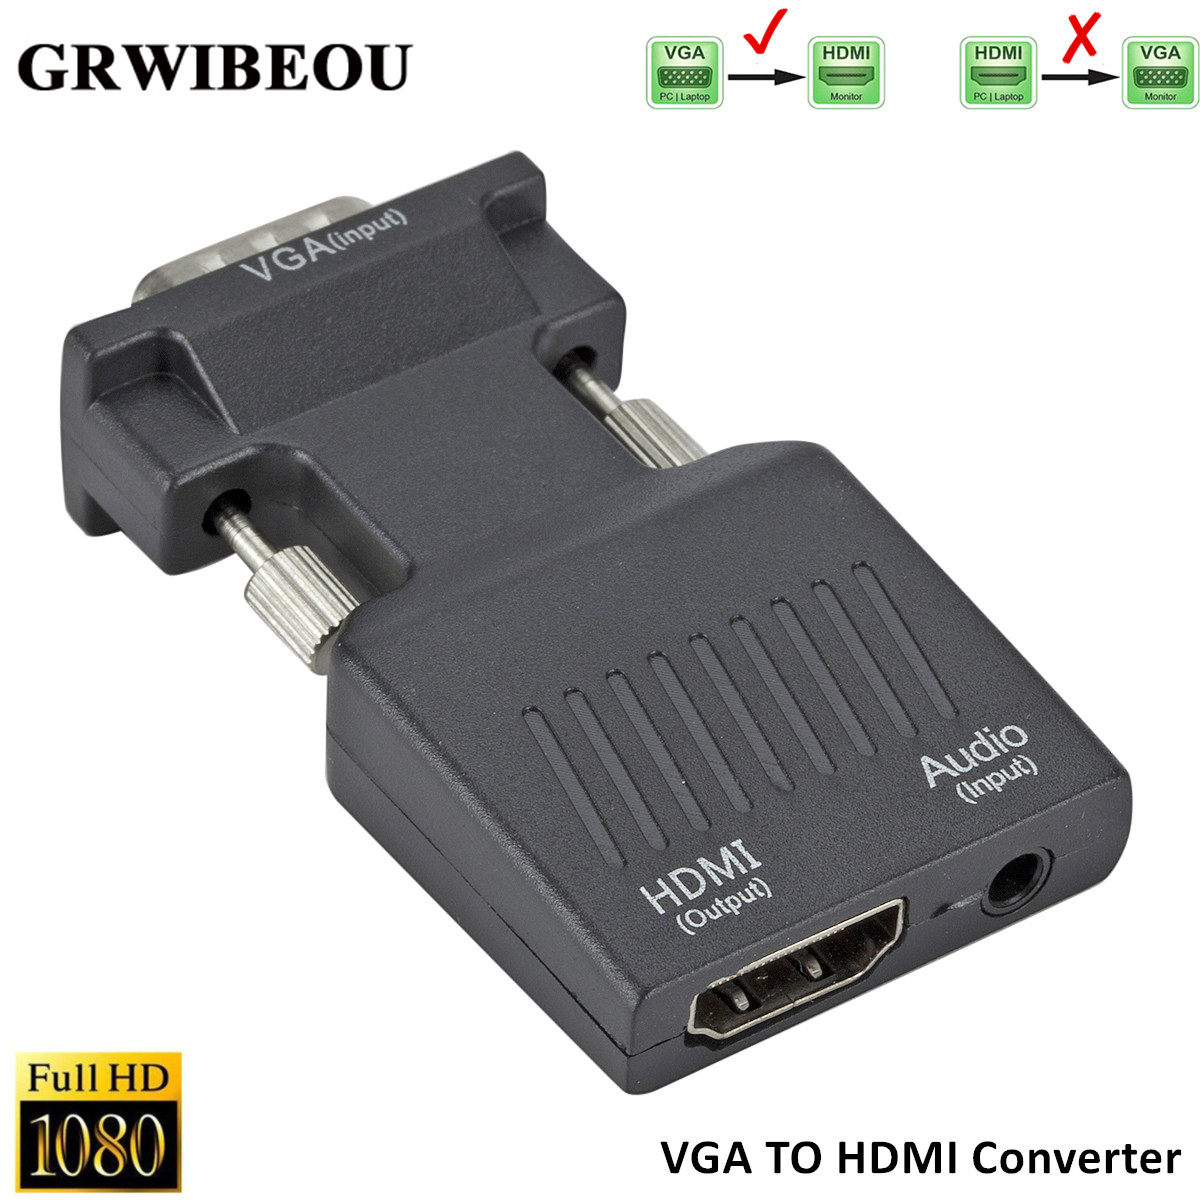 Grwibeou VGA Male To HDMI Female Converter With Audio Adapter Cables 720/1080P For HDTV Monitor Projector PC Laptop TV-Box PS3